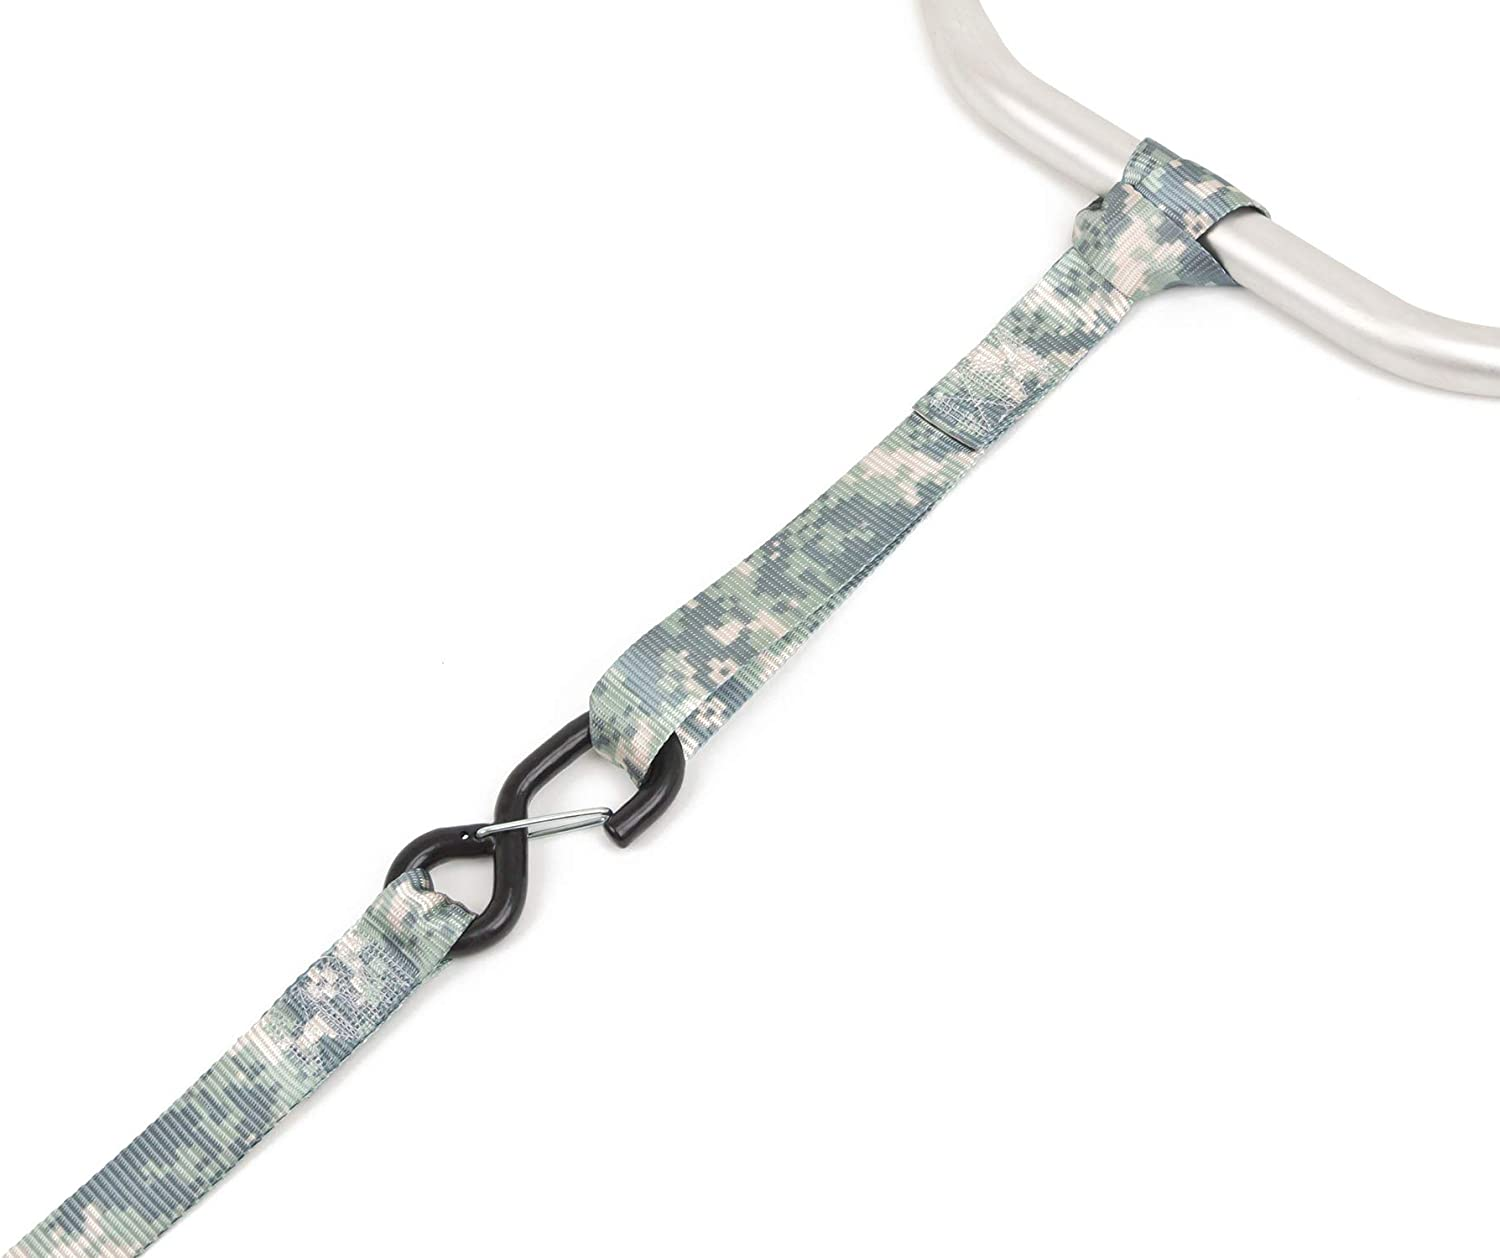 PowerTye 1.5in x 8ft DIGITAL CAMO KIT 18in Soft-Tyes Bag 1 kit Latch Hooks Made in USA with Black Ratchet